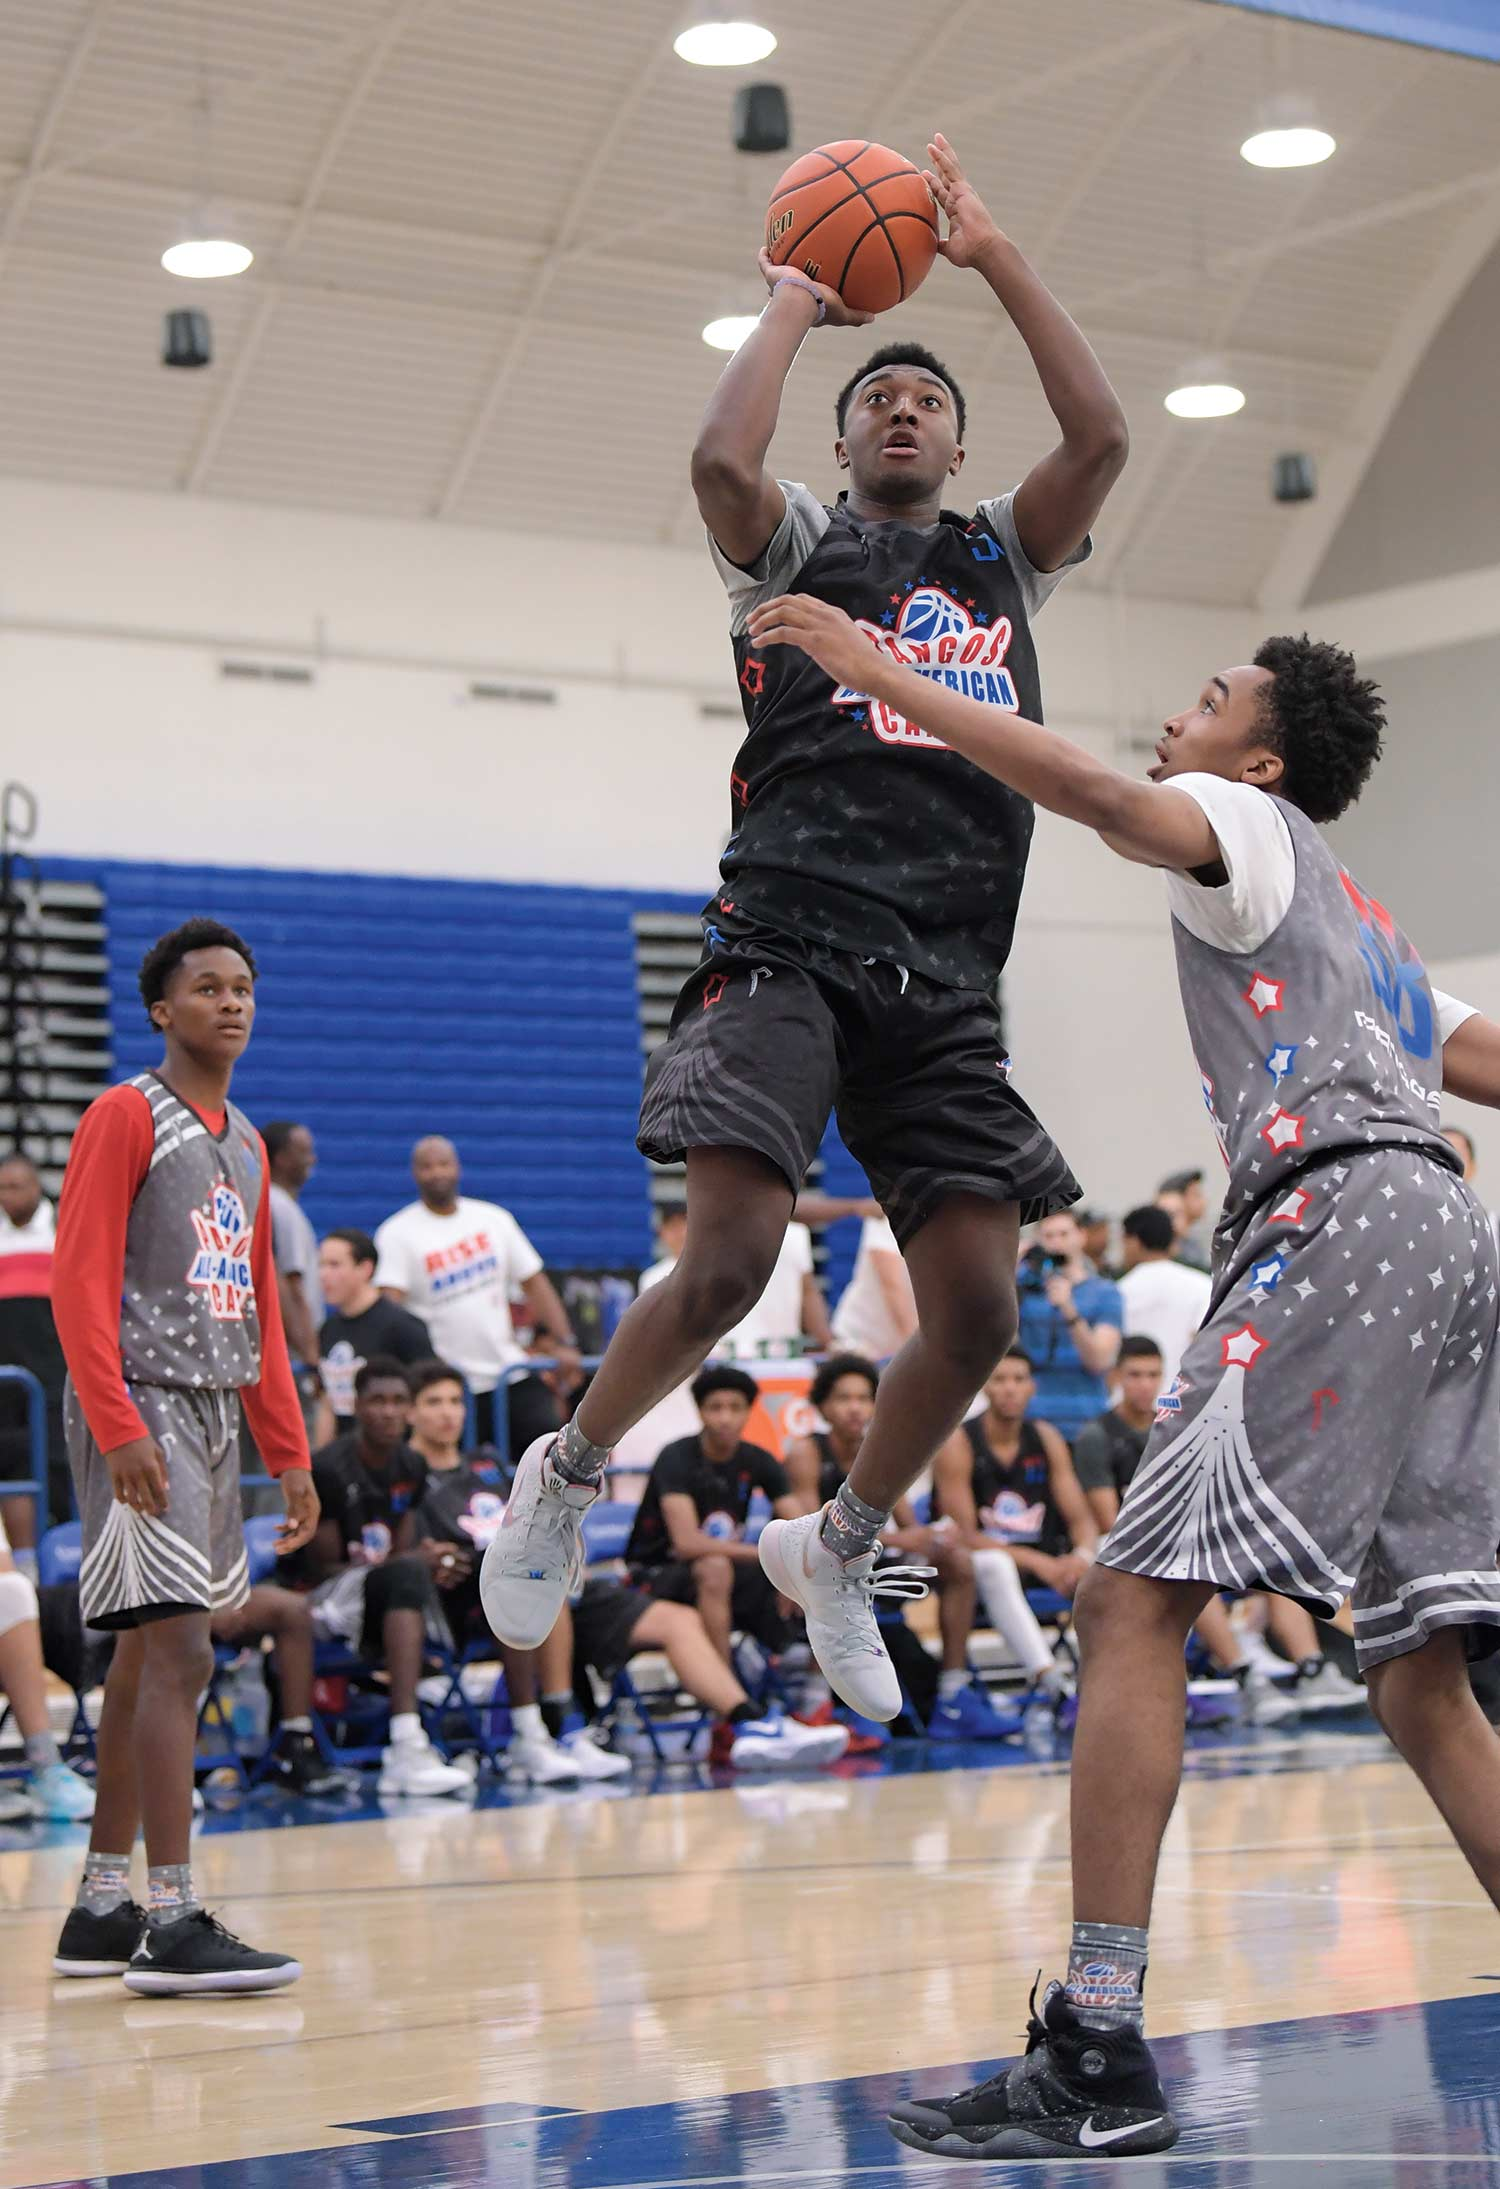 Photo courtesy AP Images; Hillcrest Prep forward Kyree Walker shoots at last summer's Pangos All-American Camp in Norwalk, California. ESPN ranks the junior scorer as the No. 3 player at his position in the class of 2020.